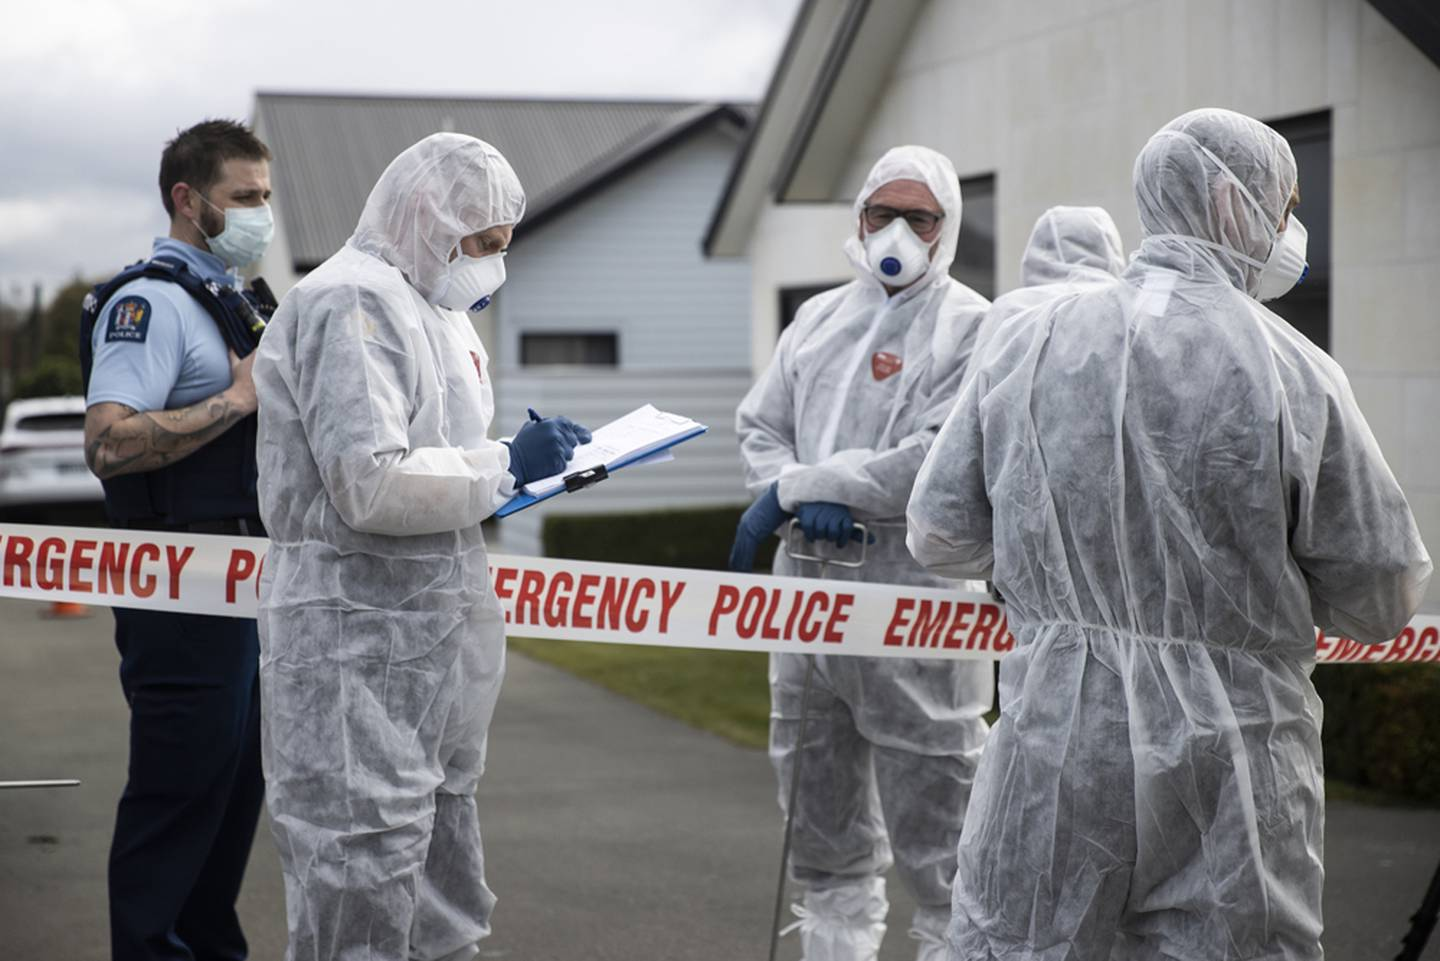 Police today at the scene of where three young girls were found dead in Timaru. Photo: NZ Herald